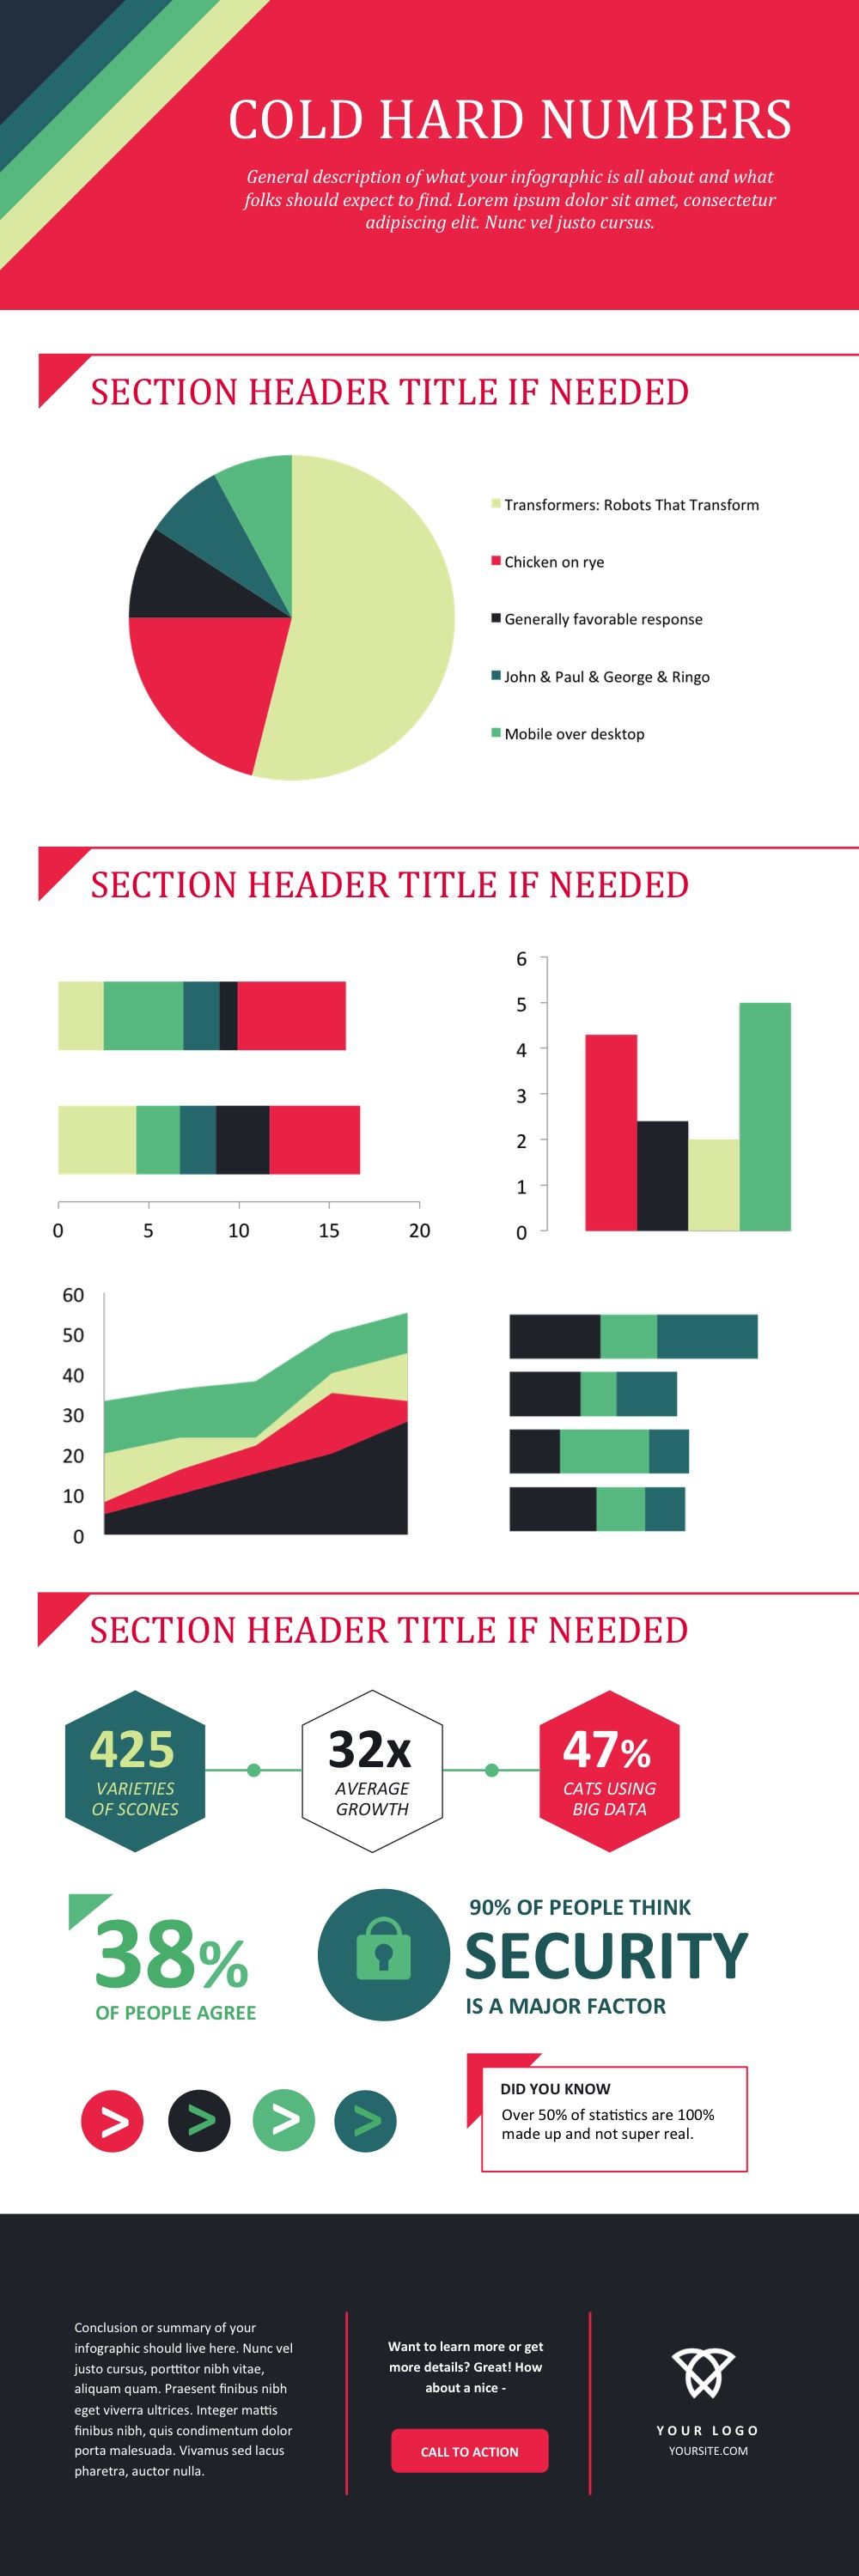 how to make an infographic in under an hour [15 free infographic, Presentation templates